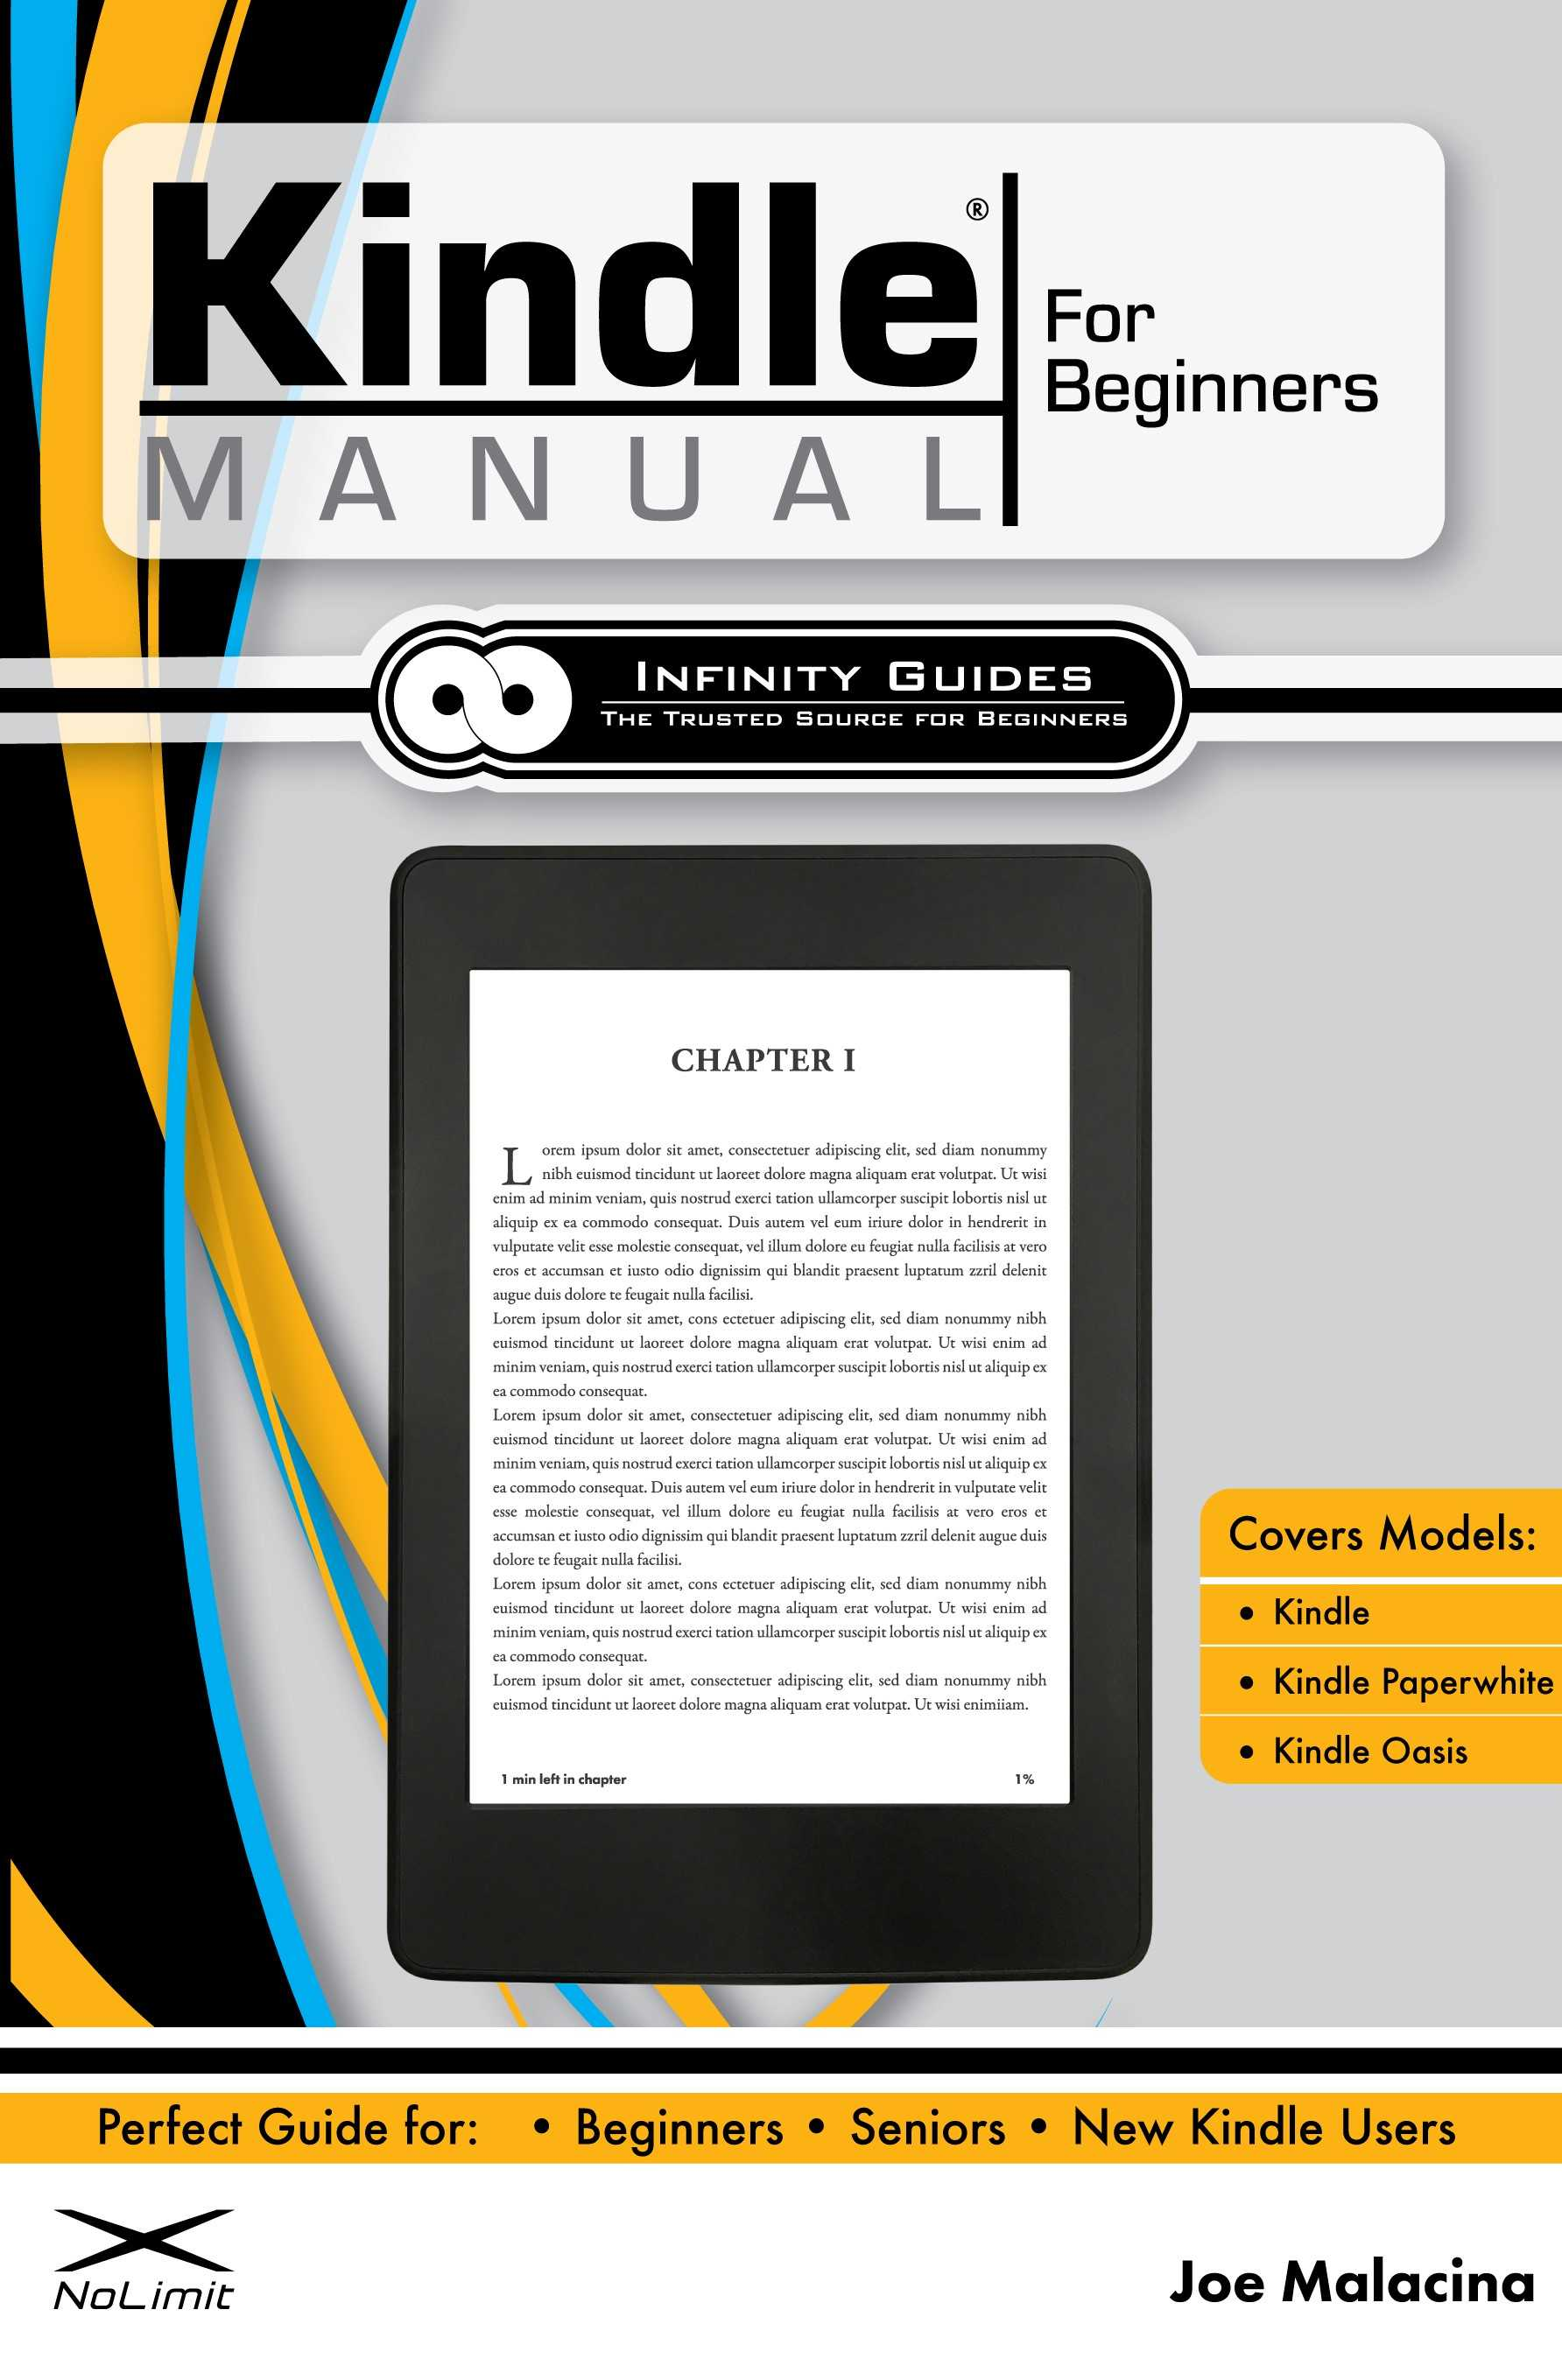 Kindle Manual for Beginners